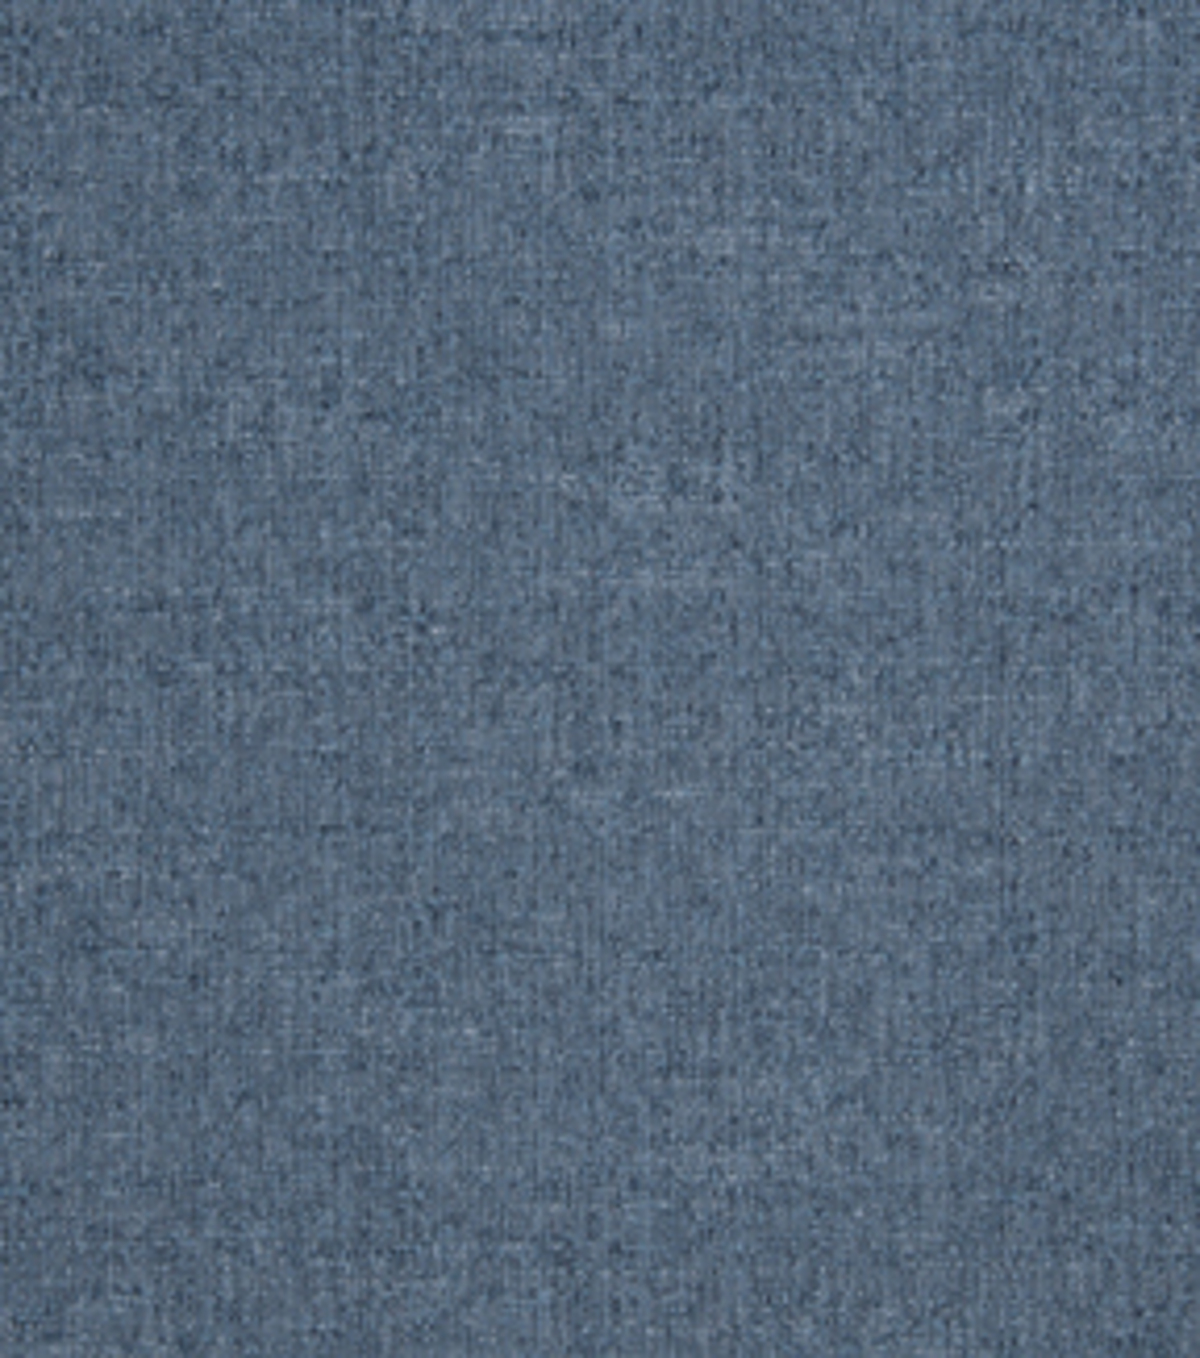 Home Decor 8\u0022x8\u0022 Fabric Swatch-Signature Series Texture Pacific